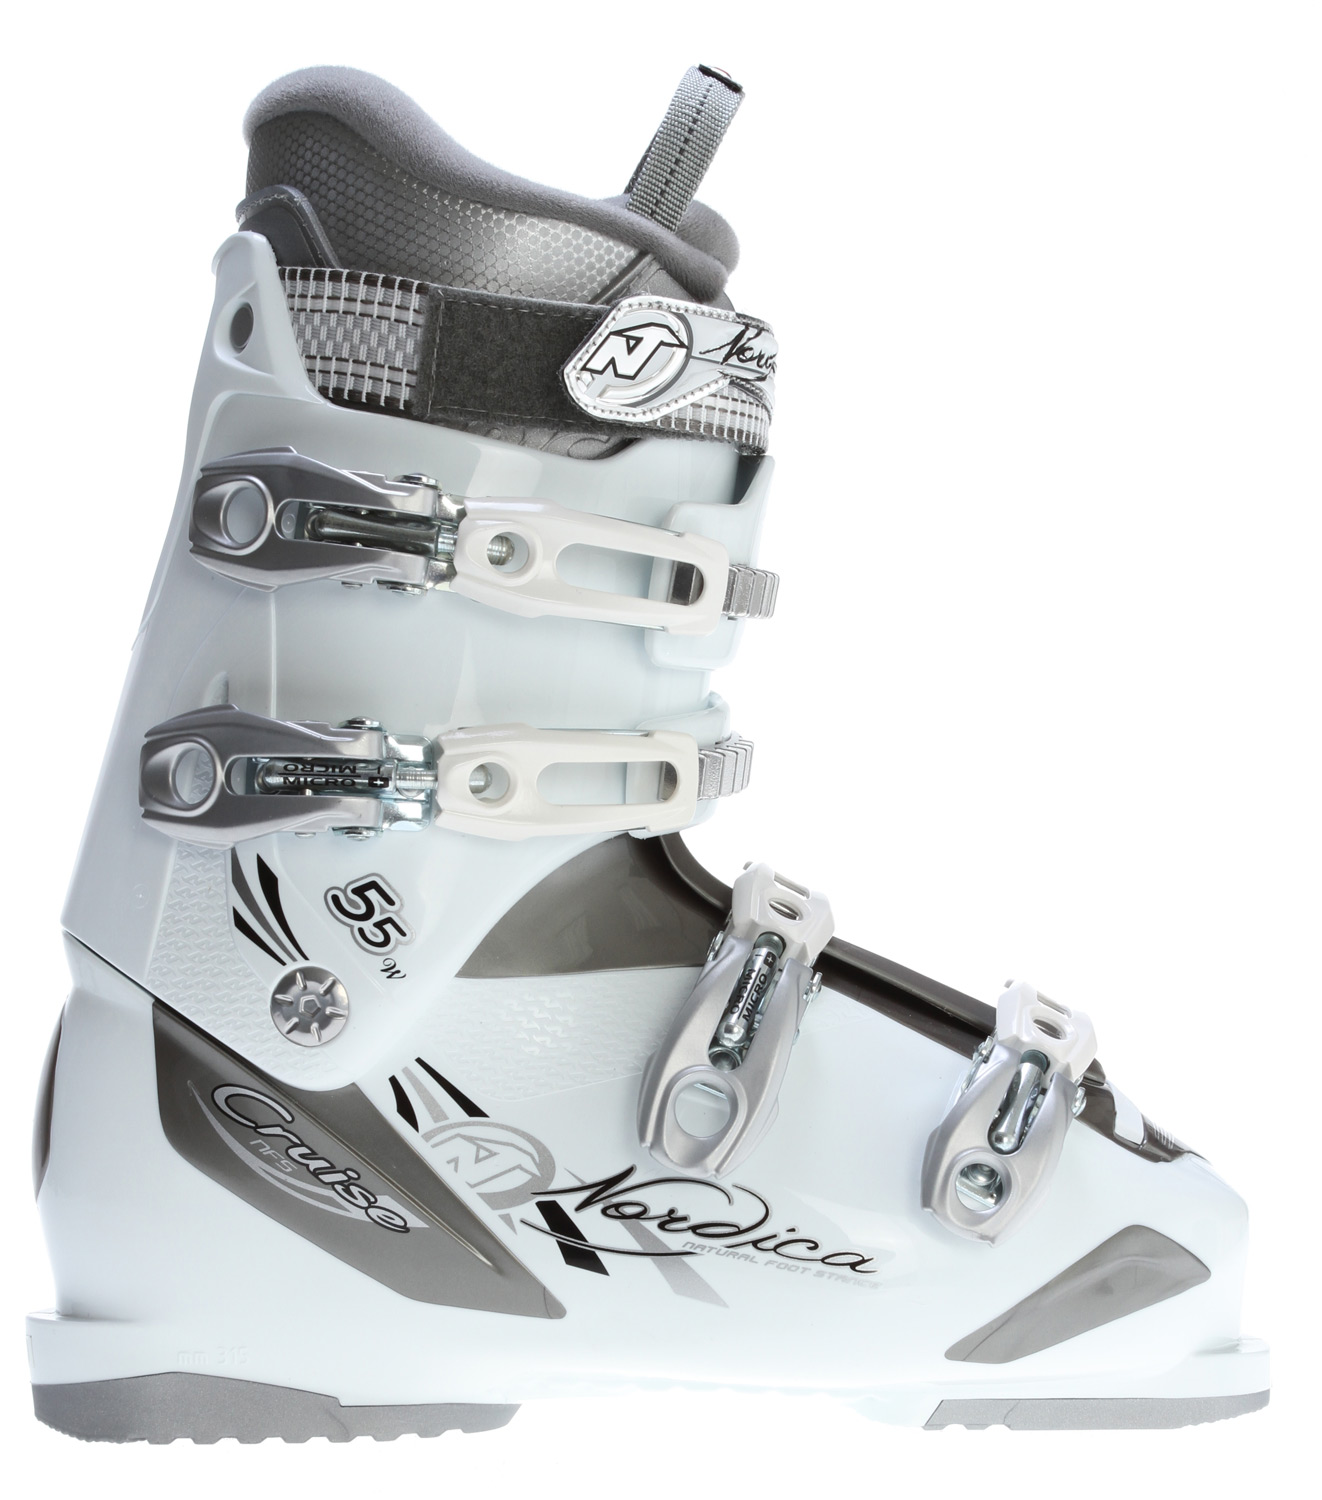 Ski Key Features of the Nordica Cruise 55 Ski Boots: NFS Natural foot stance 3D Comfort fit women's liner Aluminum mix buckles Size range 22.5-27.5 MP Last: 104 mm - $138.95